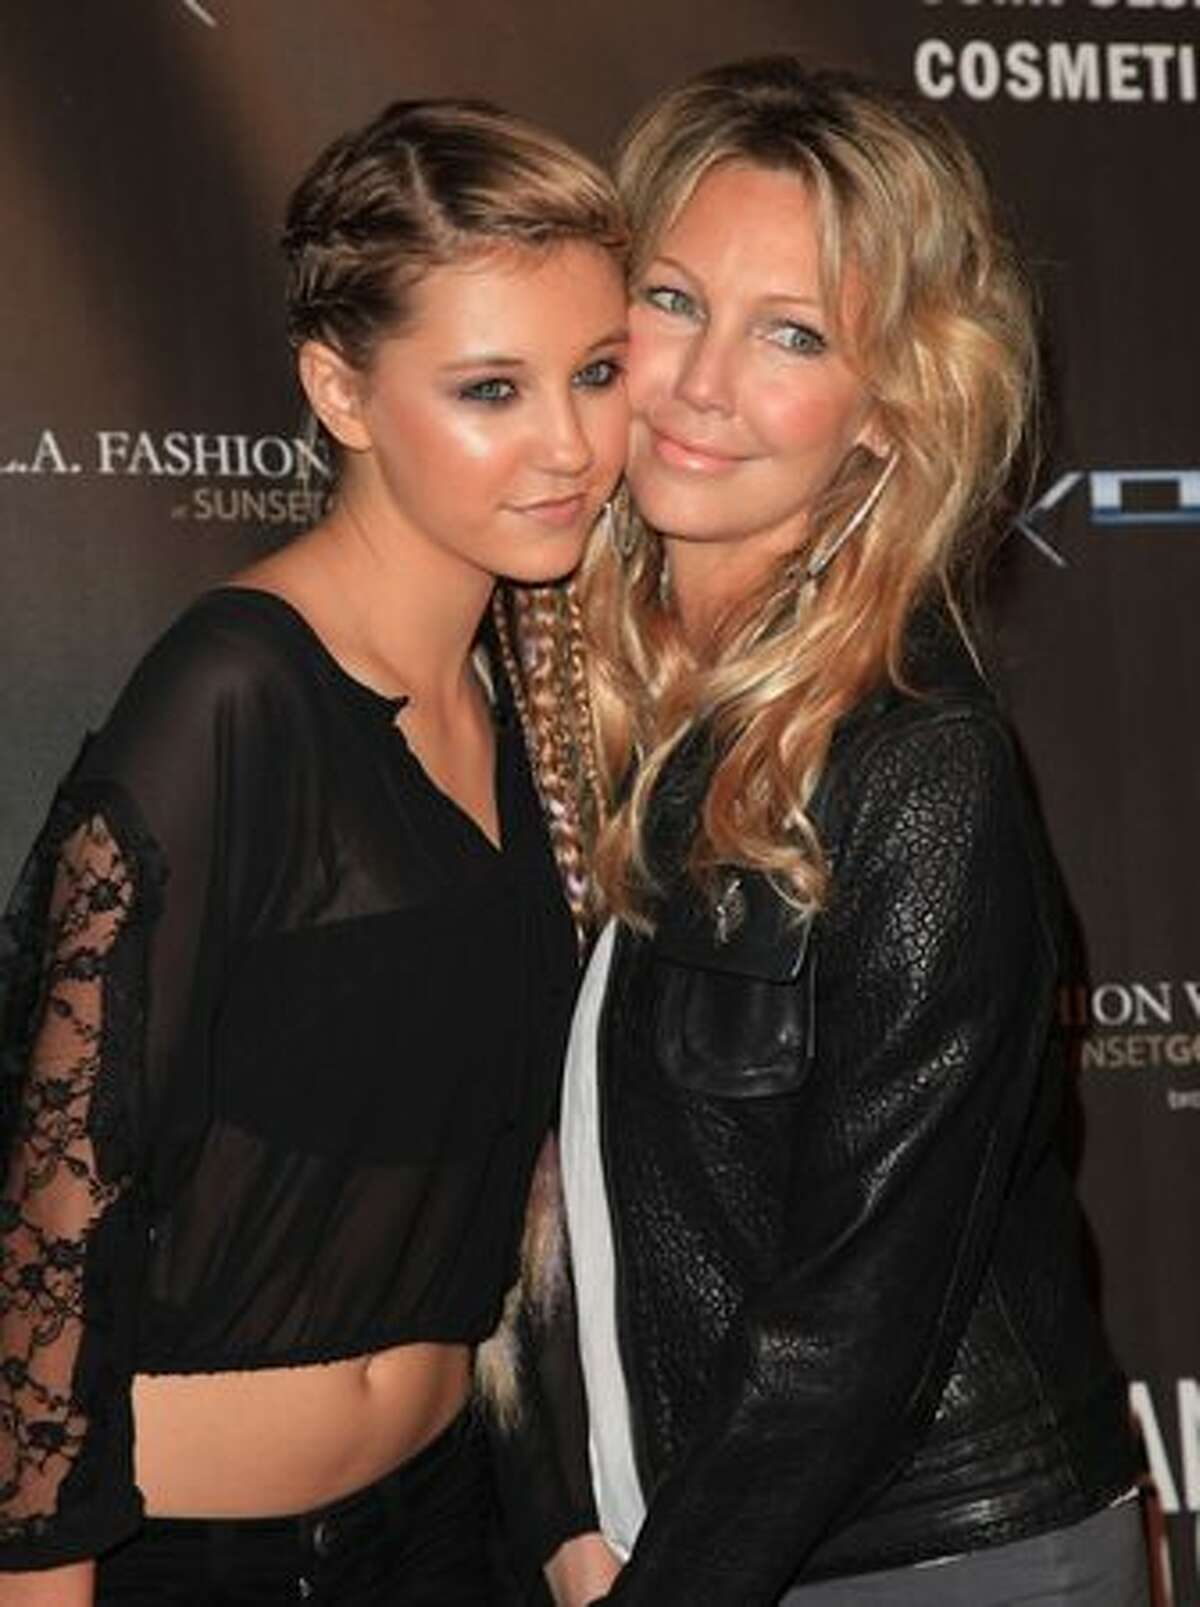 Ava Sambora and her mother Heather Locklear arrive at the WTB Spring 2011 Fashion Show at Sunset Gower Studios in Los Angeles, California.